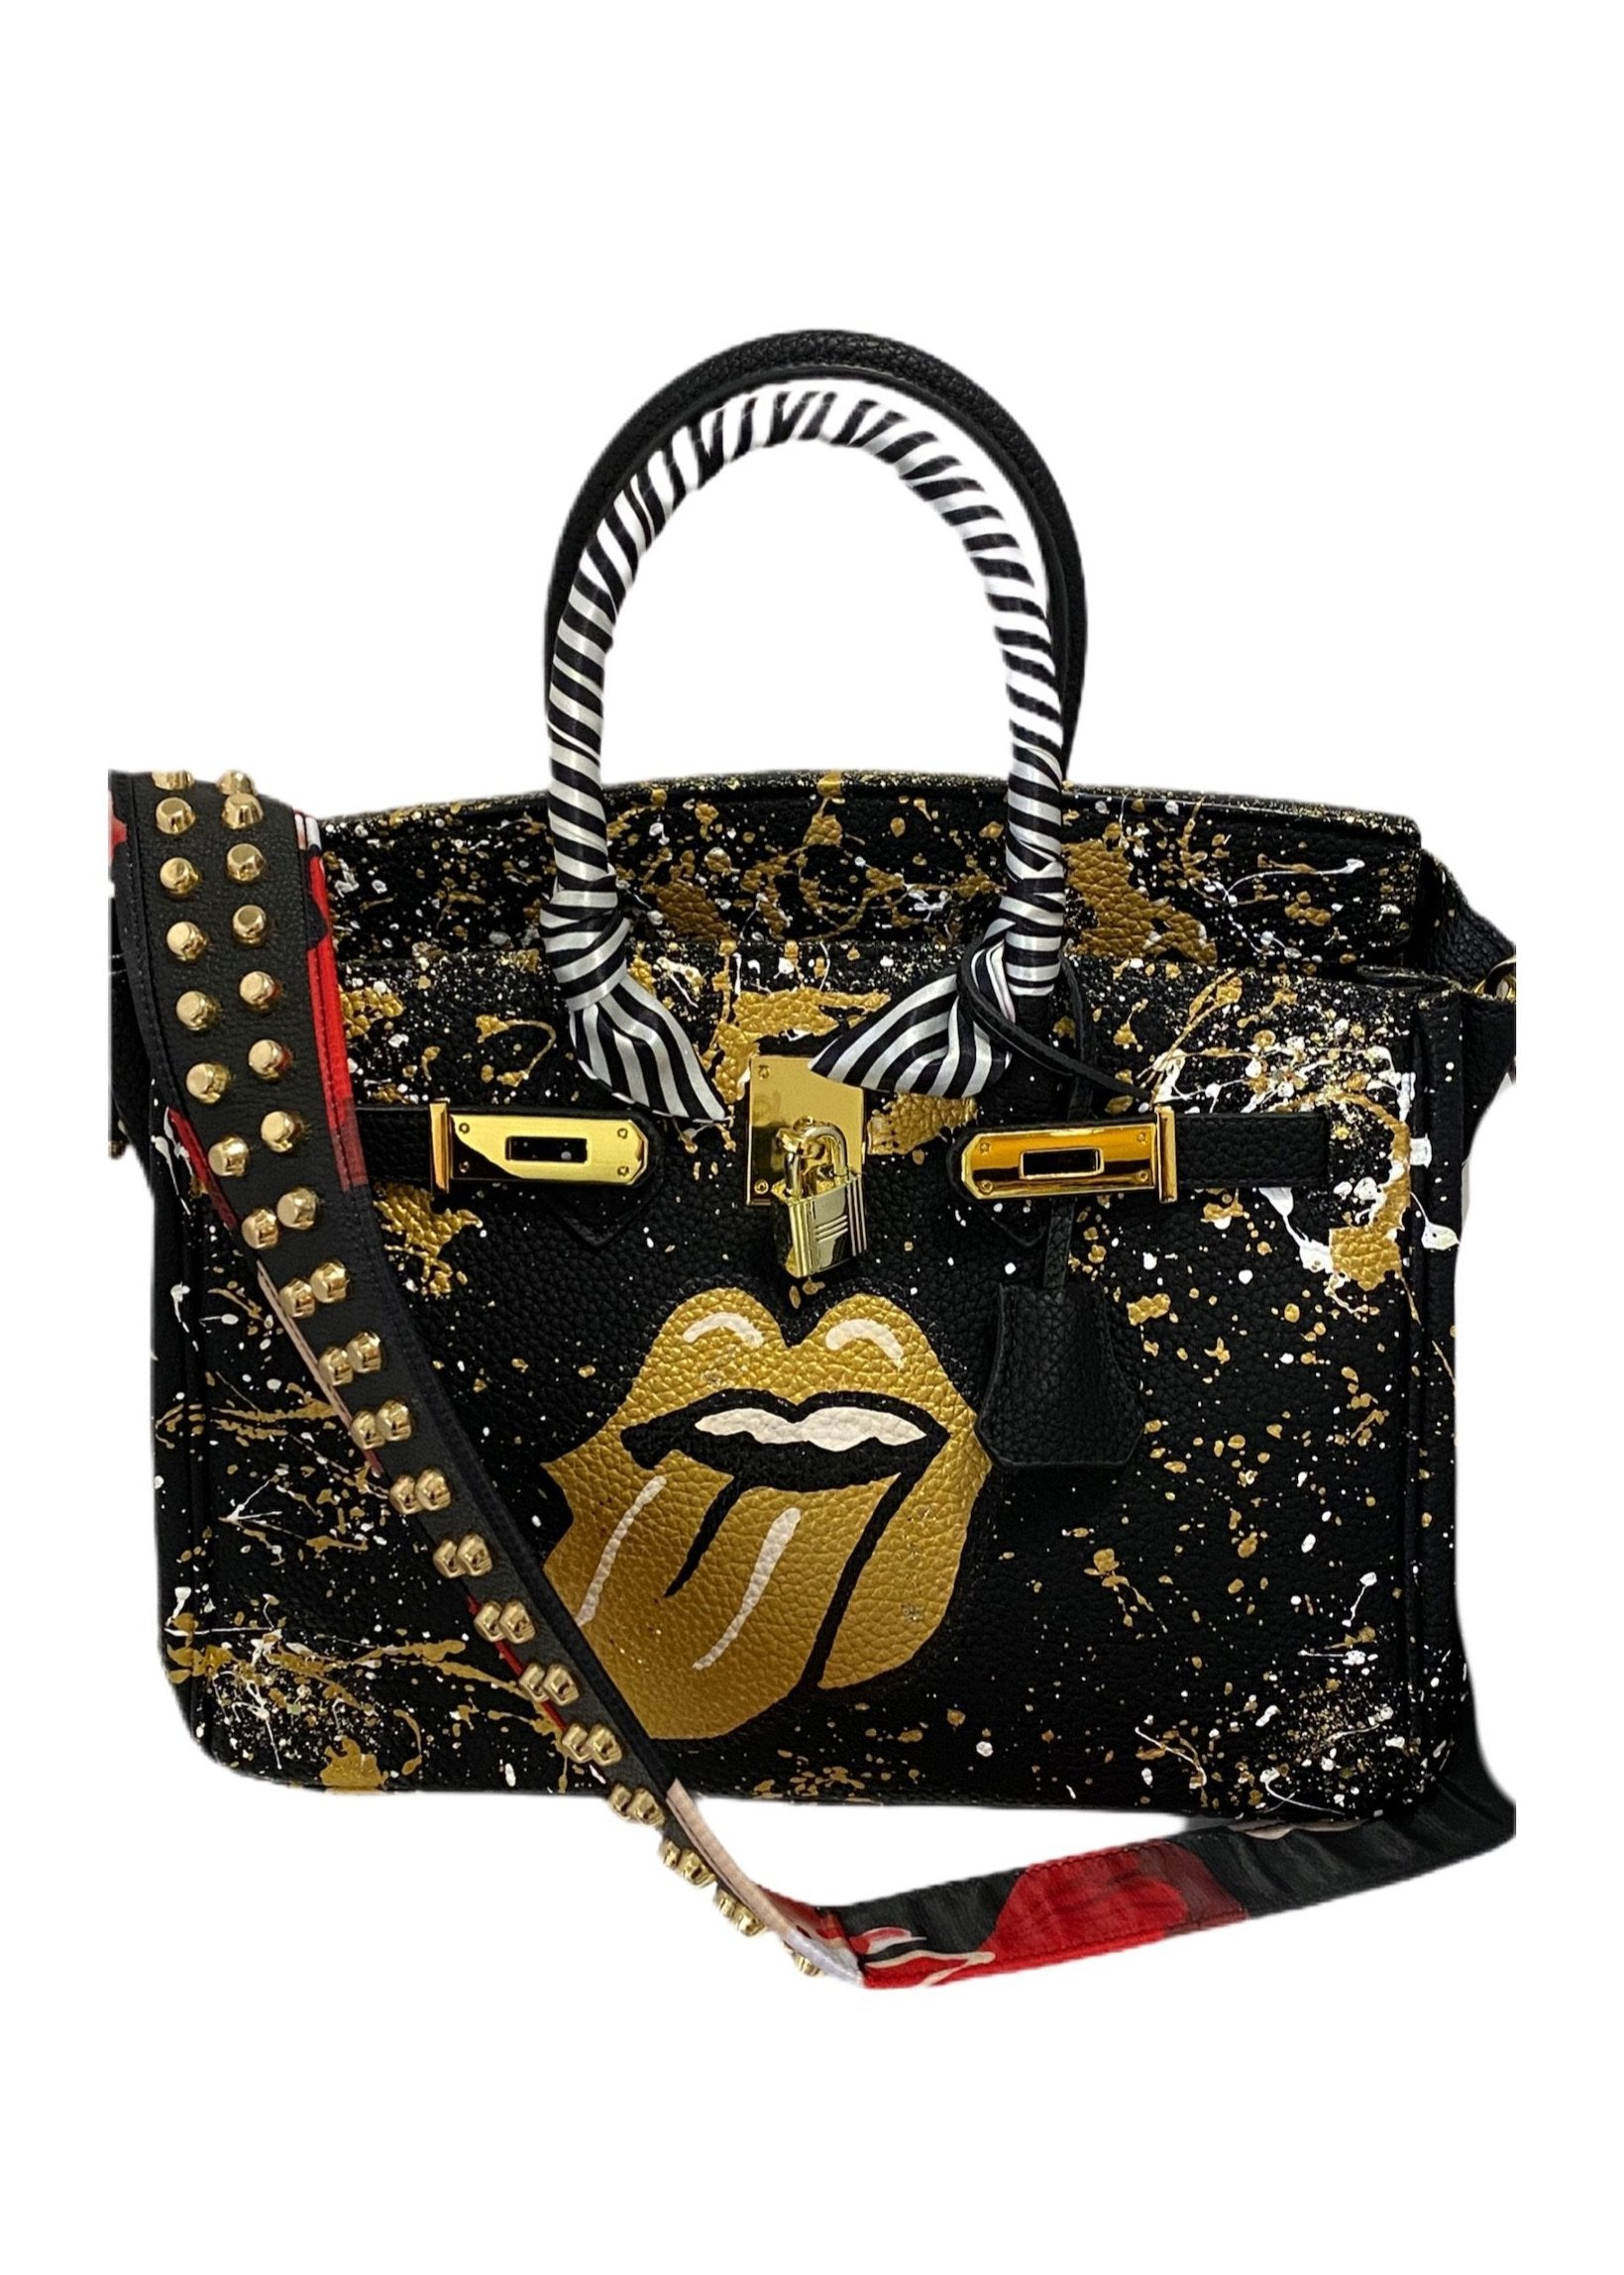 Handpainted Leather/Gold Lips Handbag